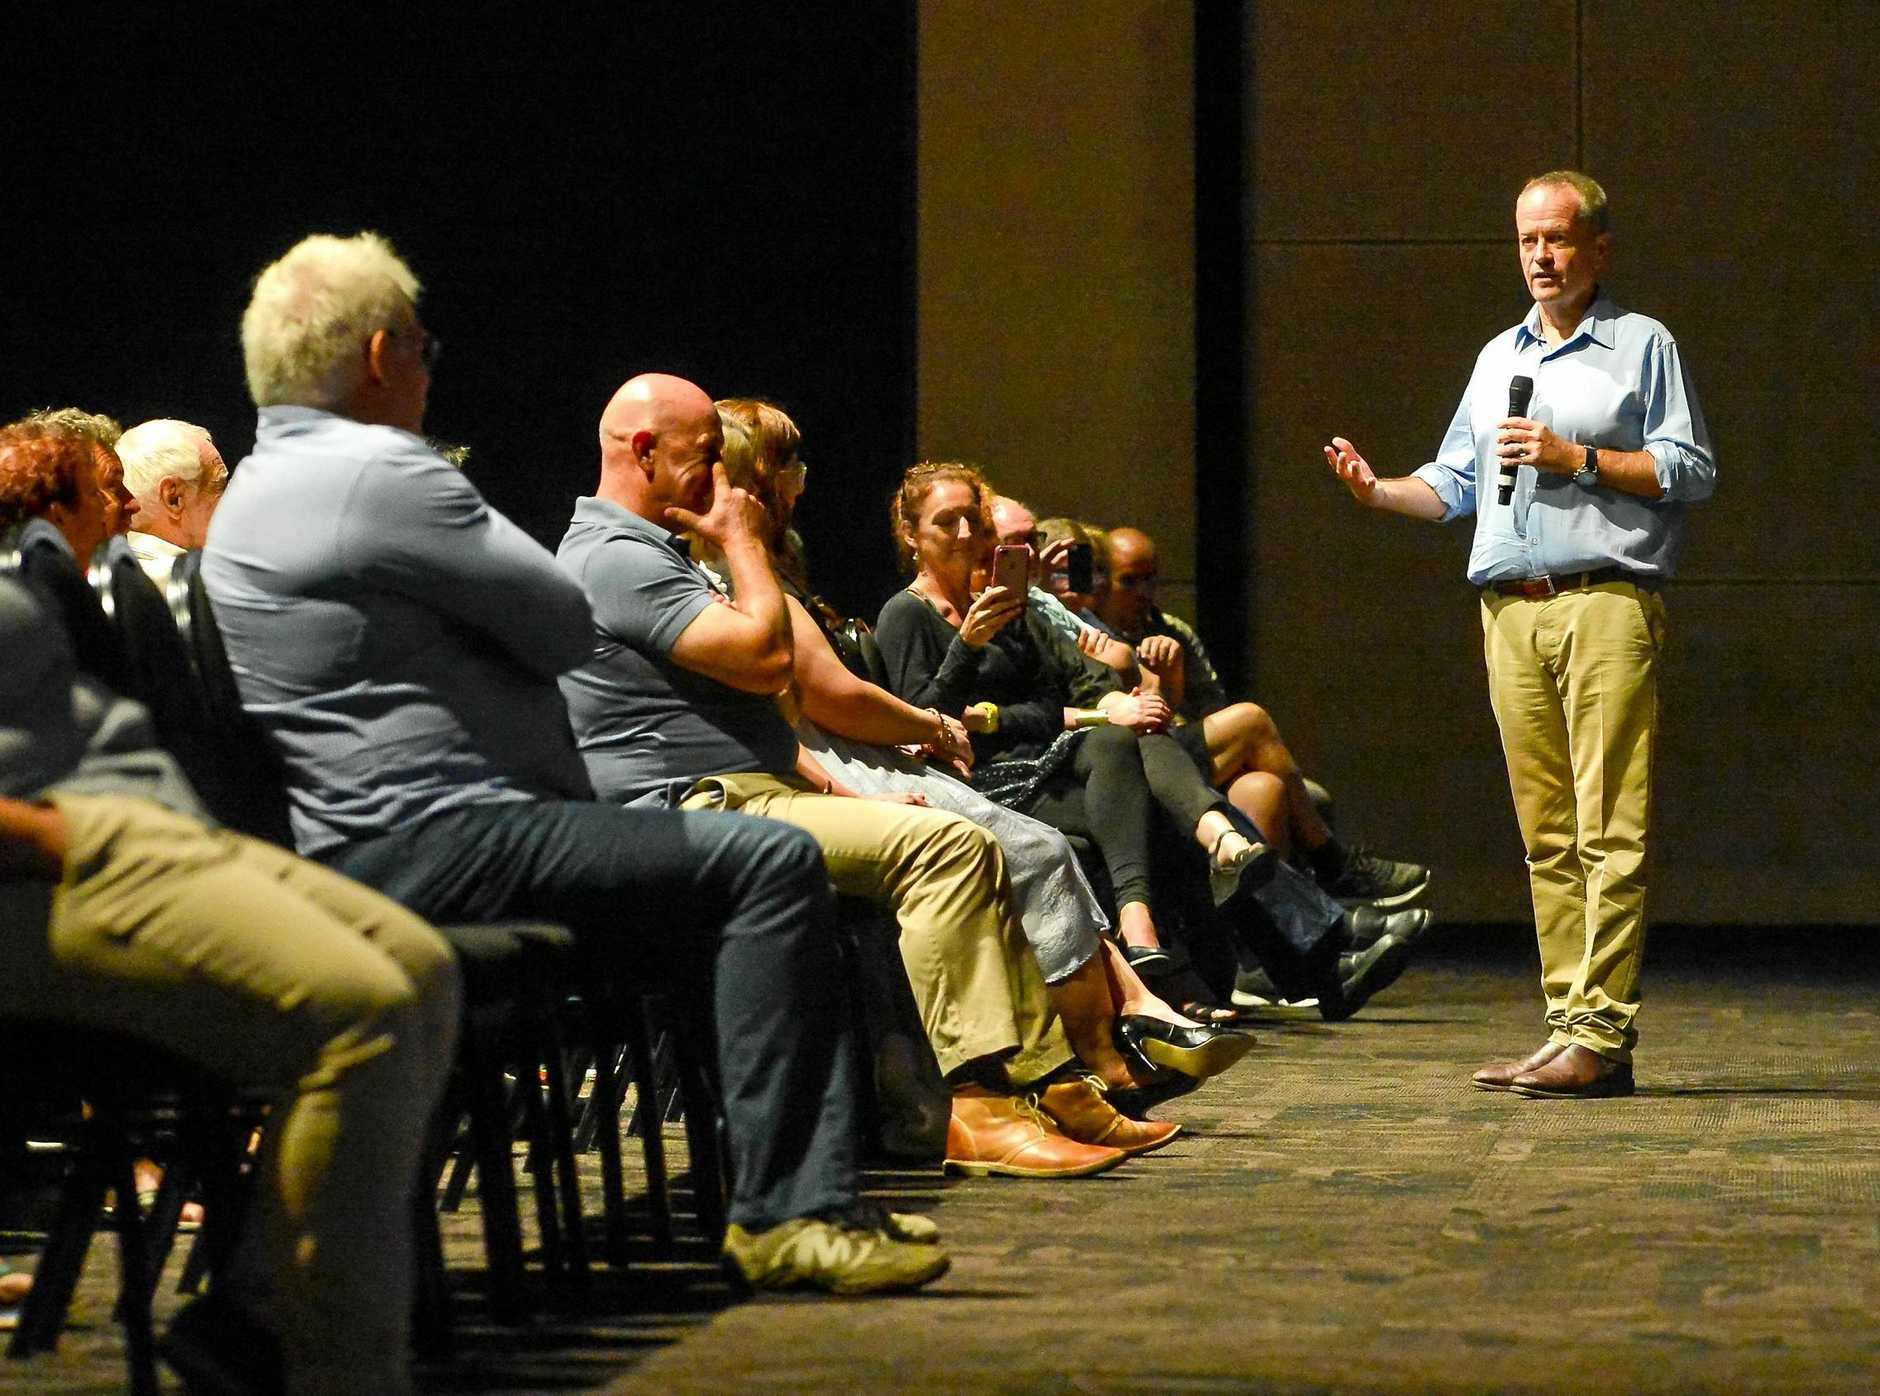 Q&A: Opposition Leader Bill Shorten takes questions at the Gladstone Entertainment Convention Centre.